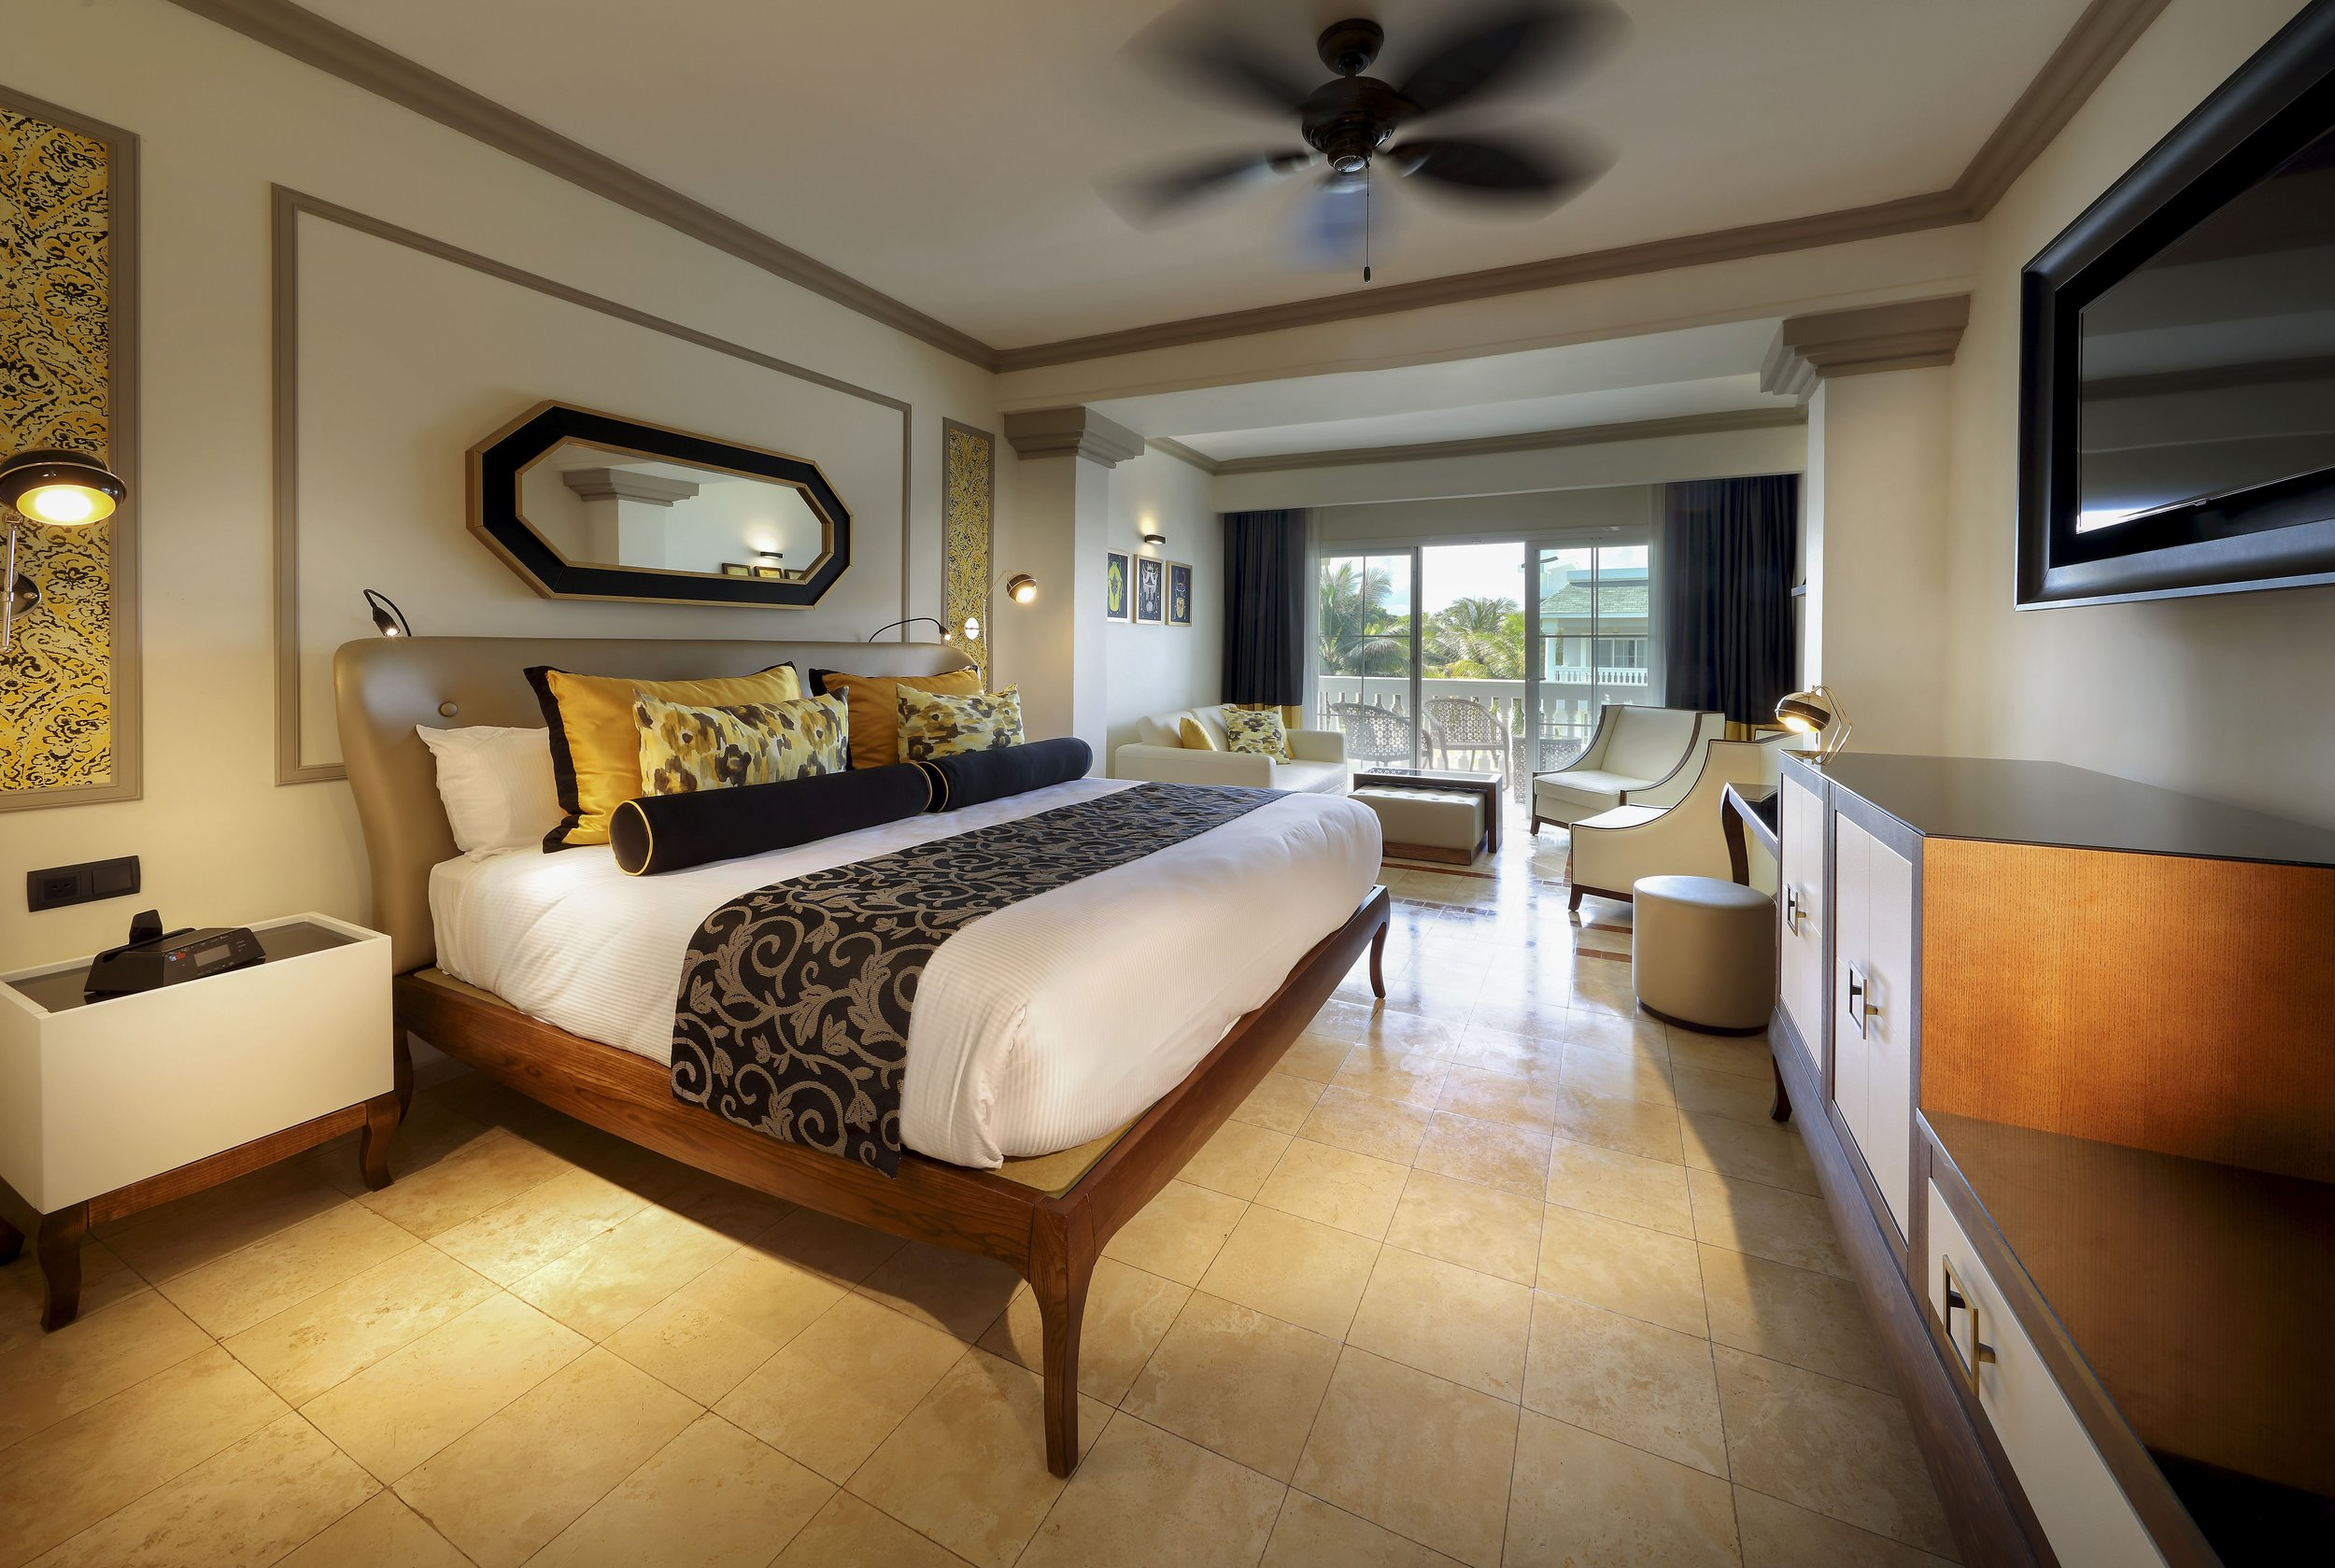 Deluxe Tropical Suite   TORONTO - JAMAICA 7 NIGHT PACKAGE   DOUBLE OCCUPANCY:  $1879 CAD PER PERSON   TRIPLE OCCUPANCY:  $1699 CAD PER PERSON   SINGLE OCCUPANCY:  $2440 CAD PER PERSON   CHILD 2-12:  $1528 CAD PER CHILD  (BASED ON 2 ADULTS SHARING A ROOM)      For guests flying from Vancouver a connector flight can be added to the Toronto package for a fee of  $250